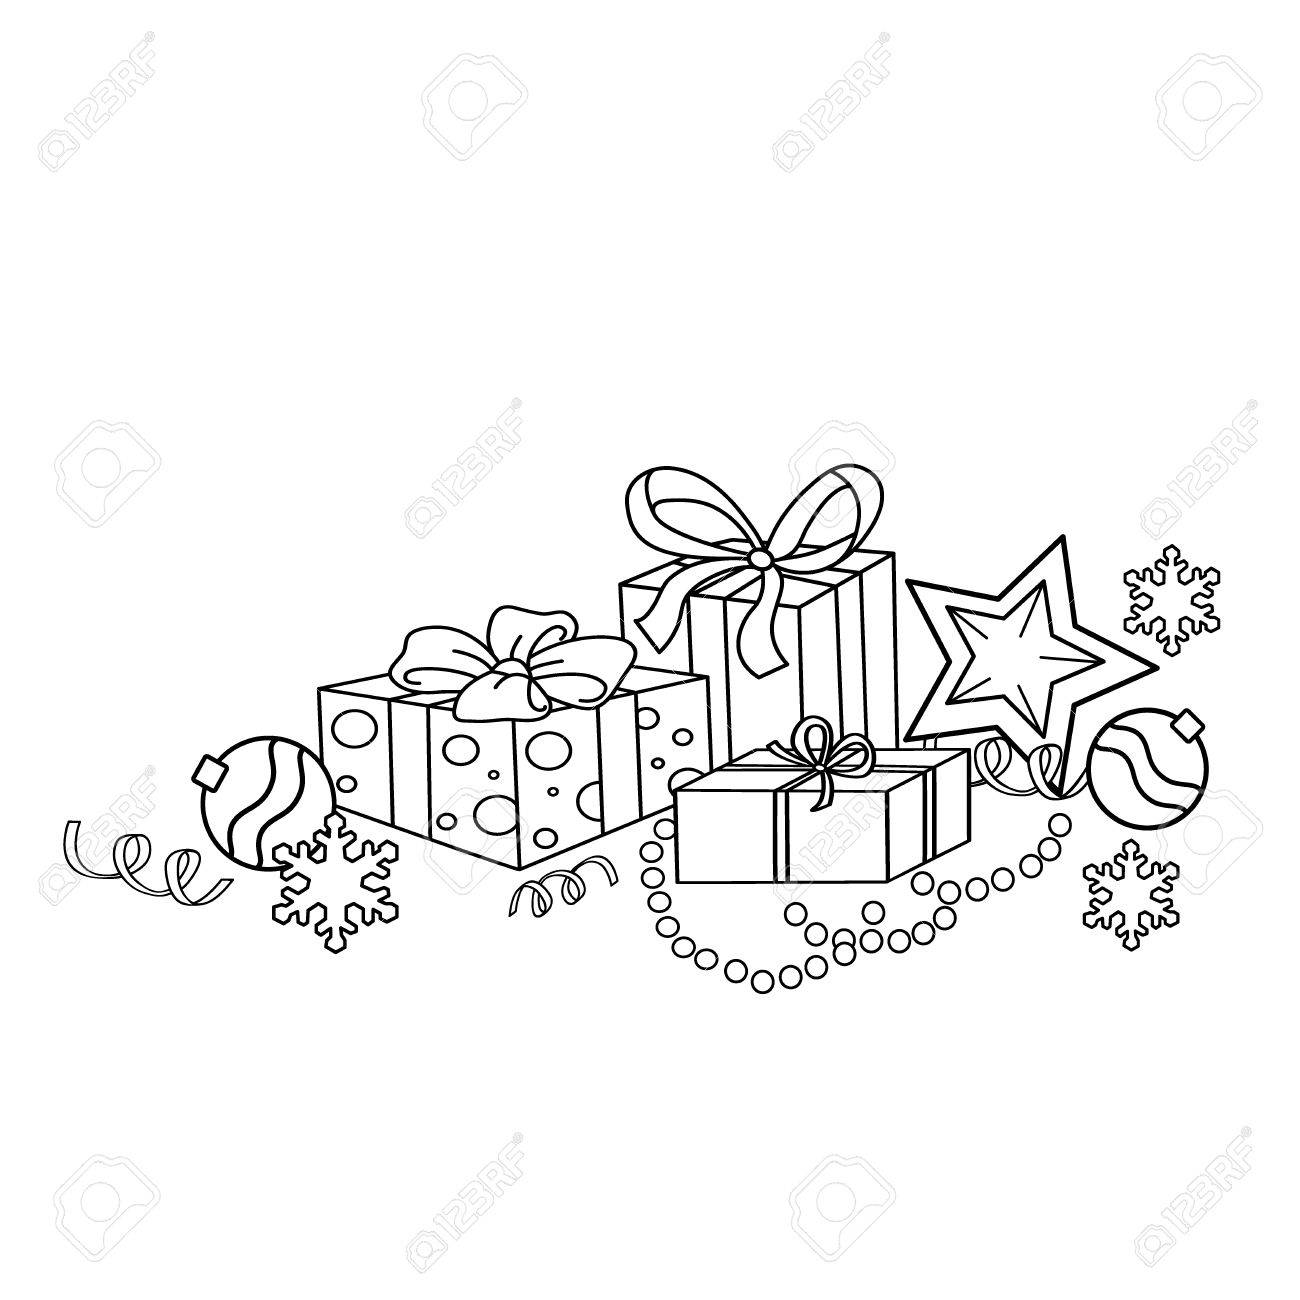 Coloring Page Outline Of Cartoon Christmas Ornaments And Gifts ...